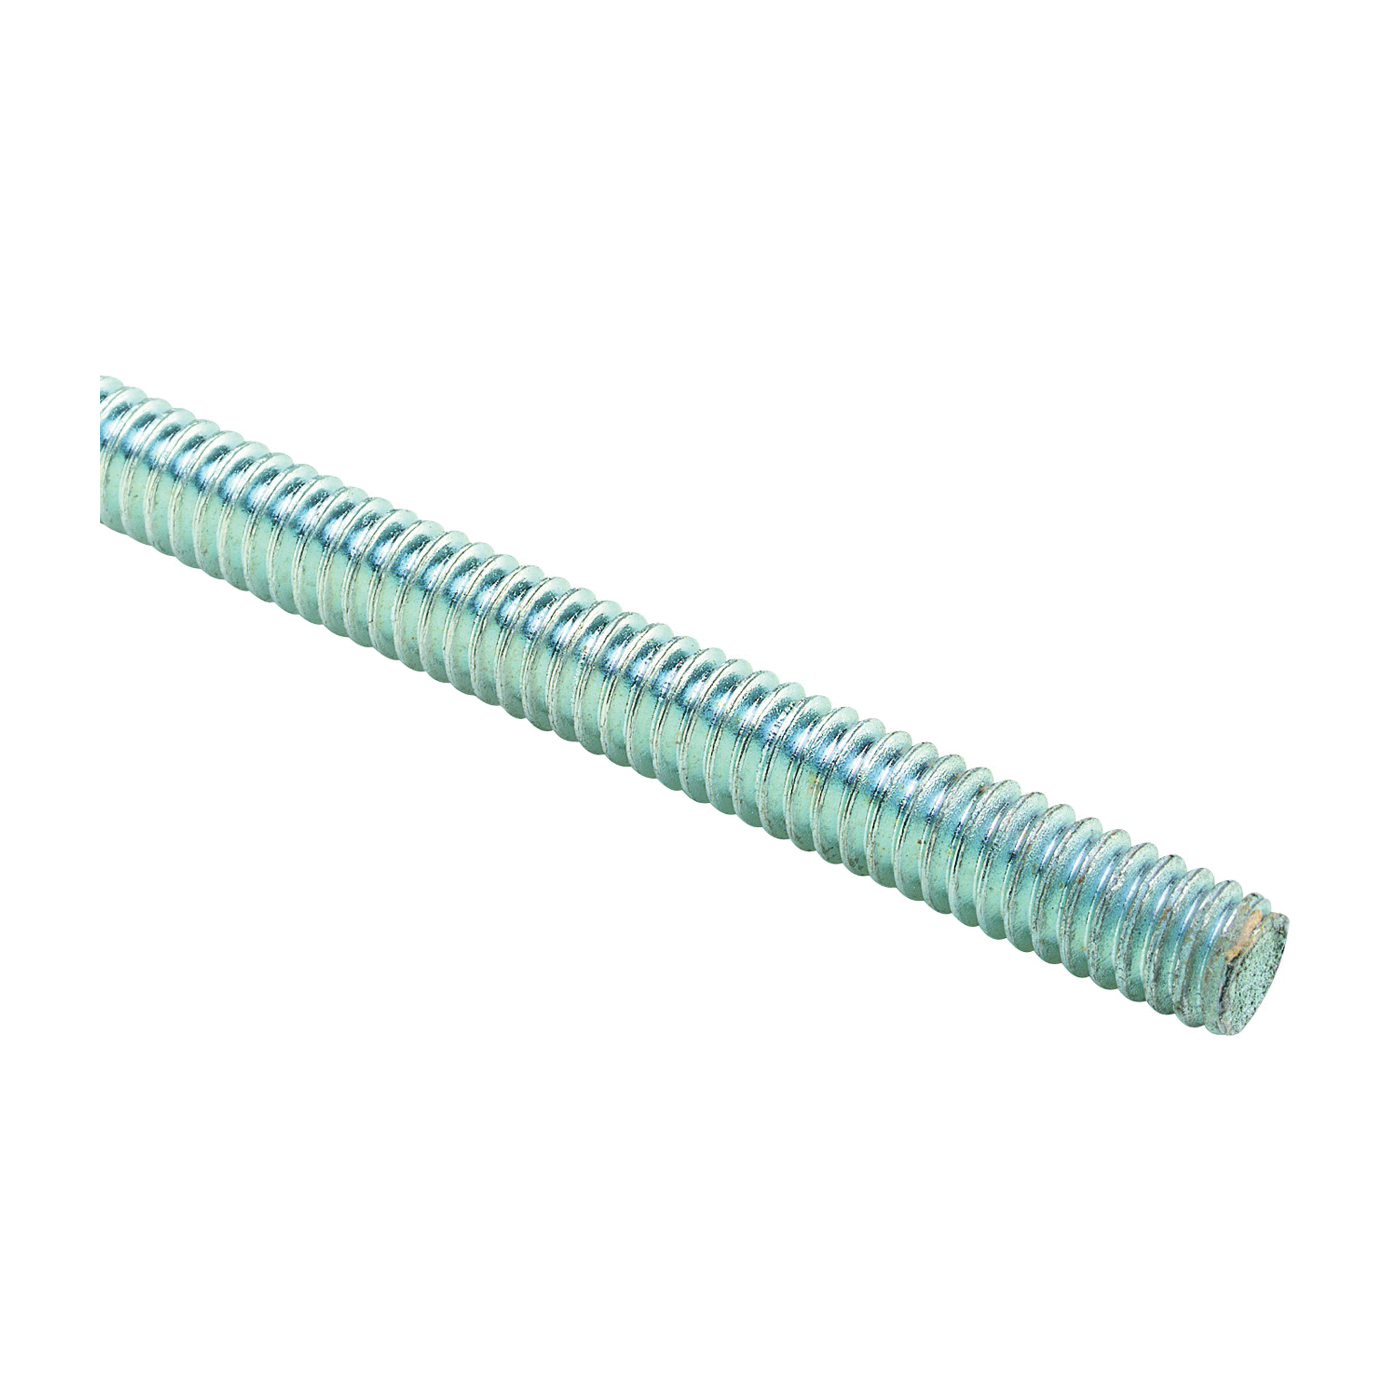 Picture of SuperStrut R Series ZR1048 Threaded Rod, Steel, Silver, Electro-Galvanized